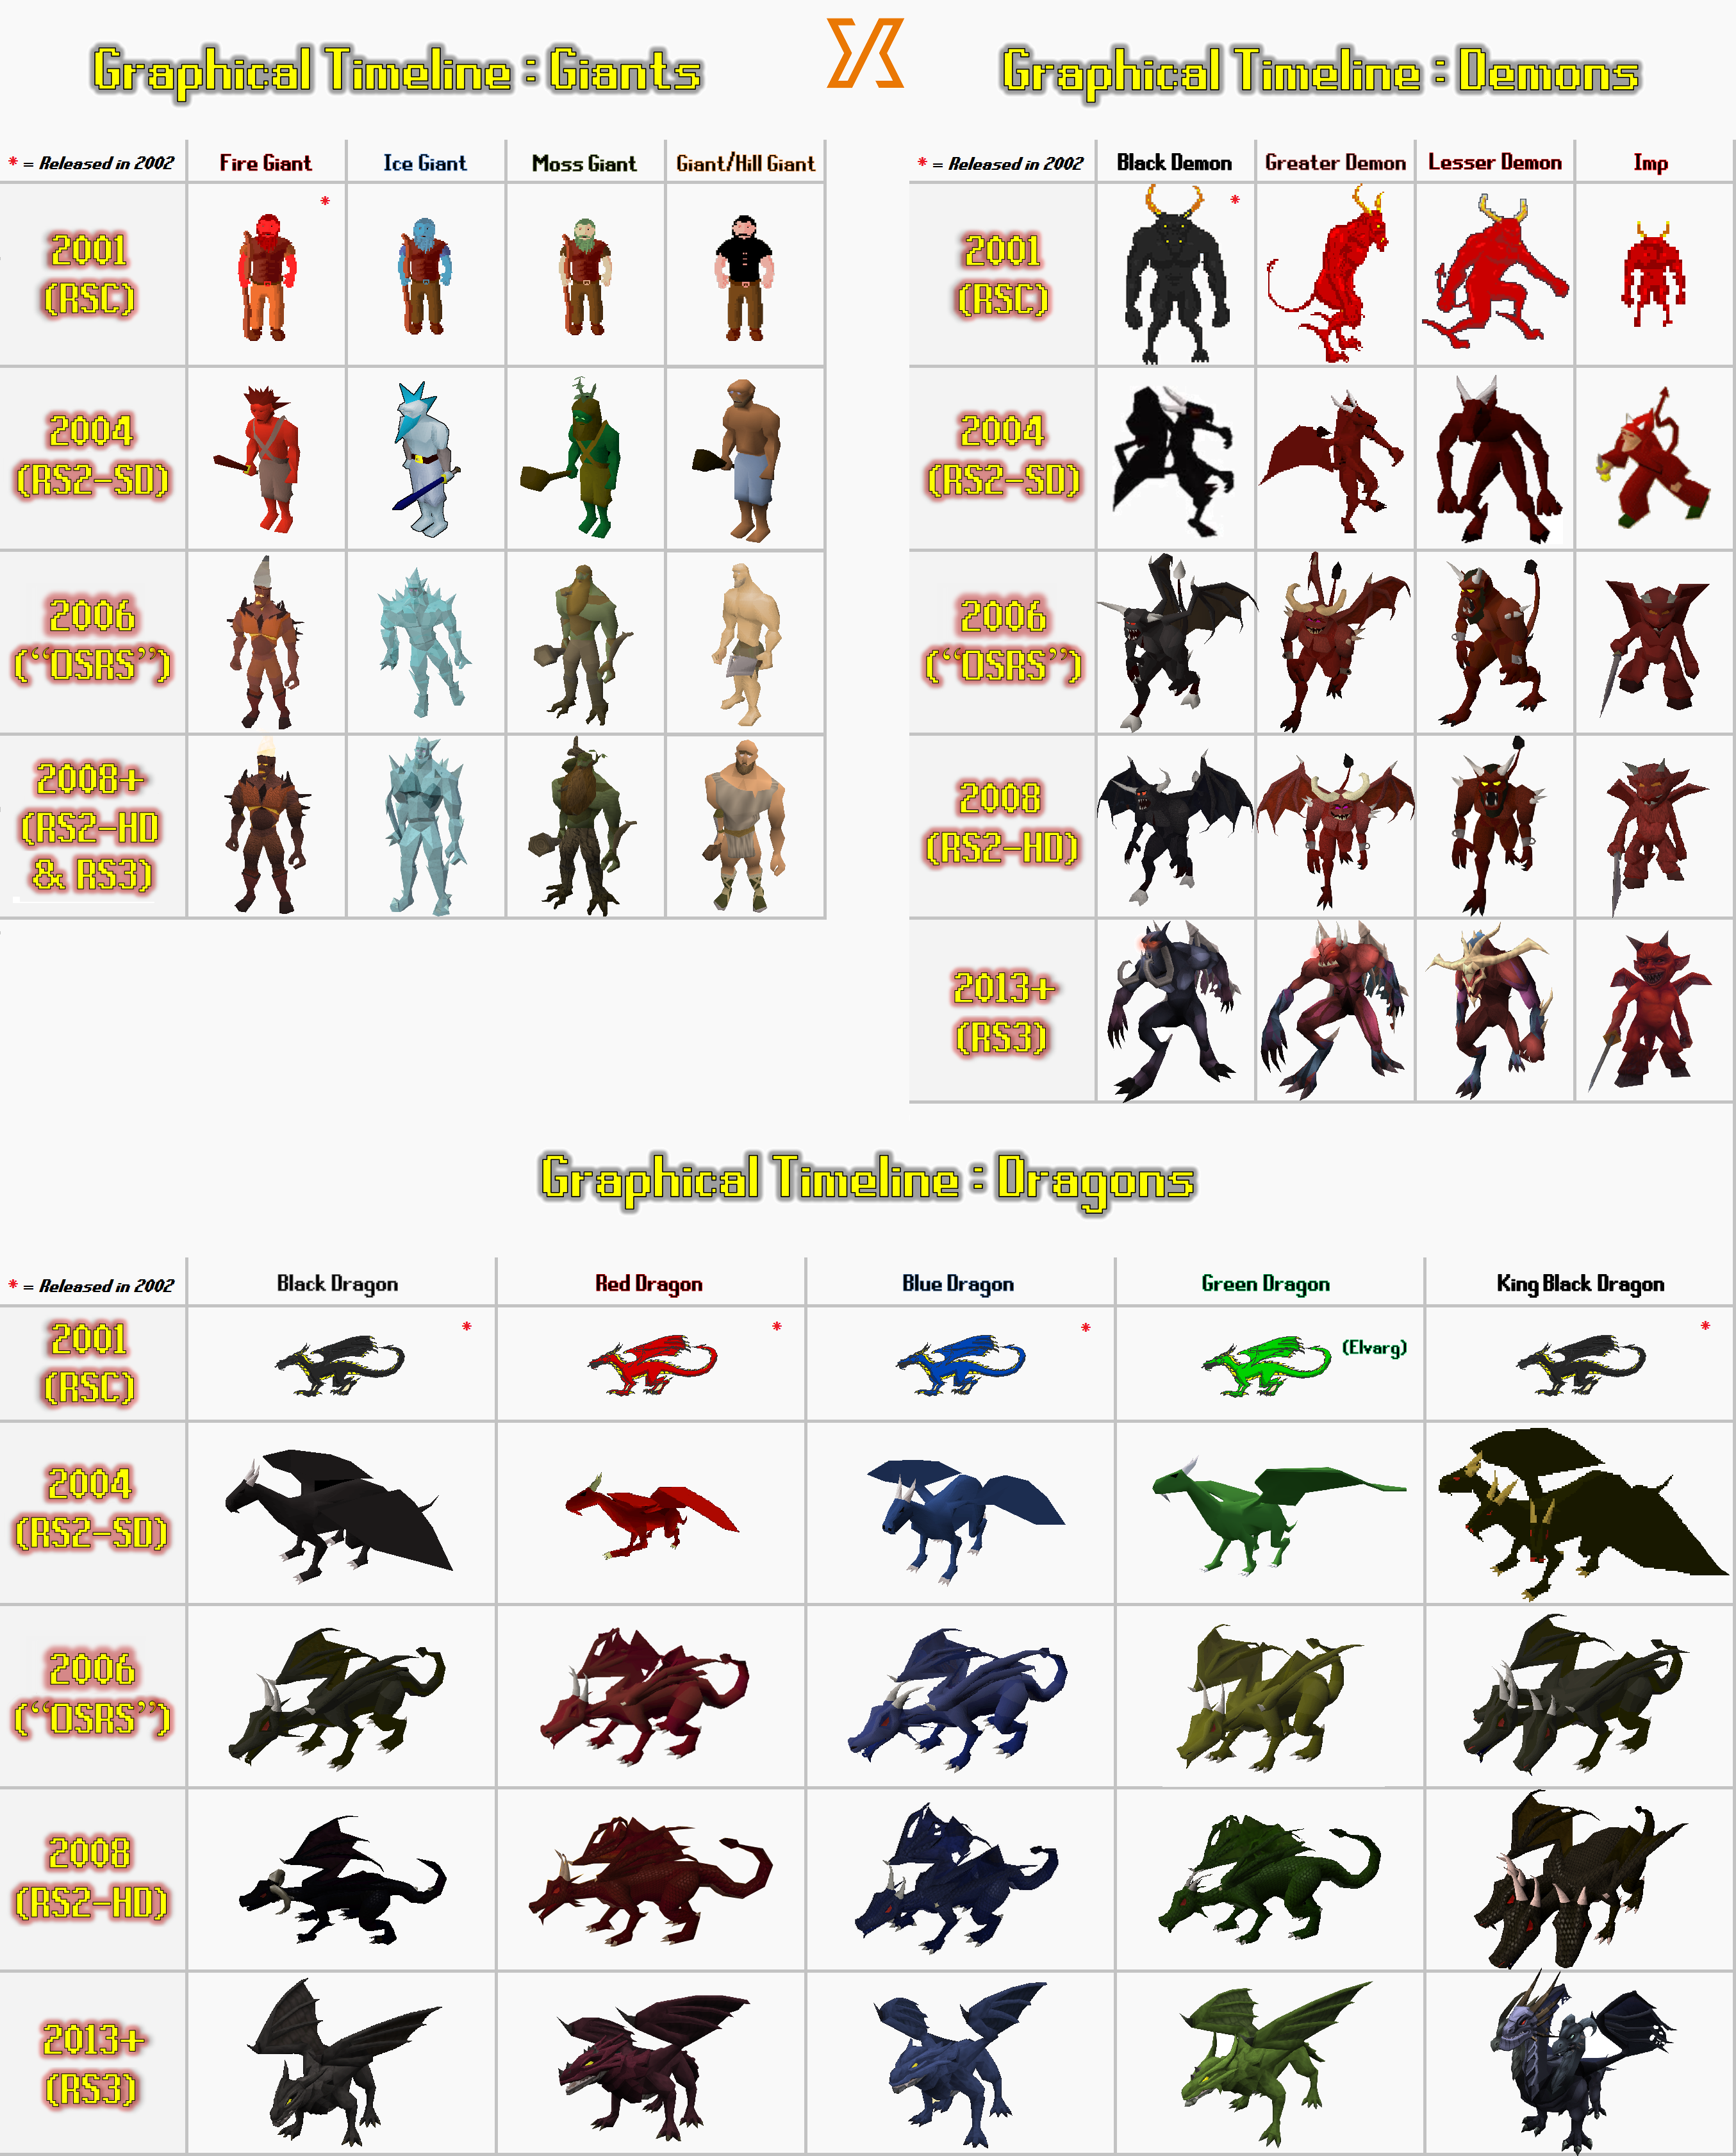 Rsc Inherited Bestiary Graphical Timeline Giants Demons Dragons 2007scape Bestiary Graphic Old School Runescape